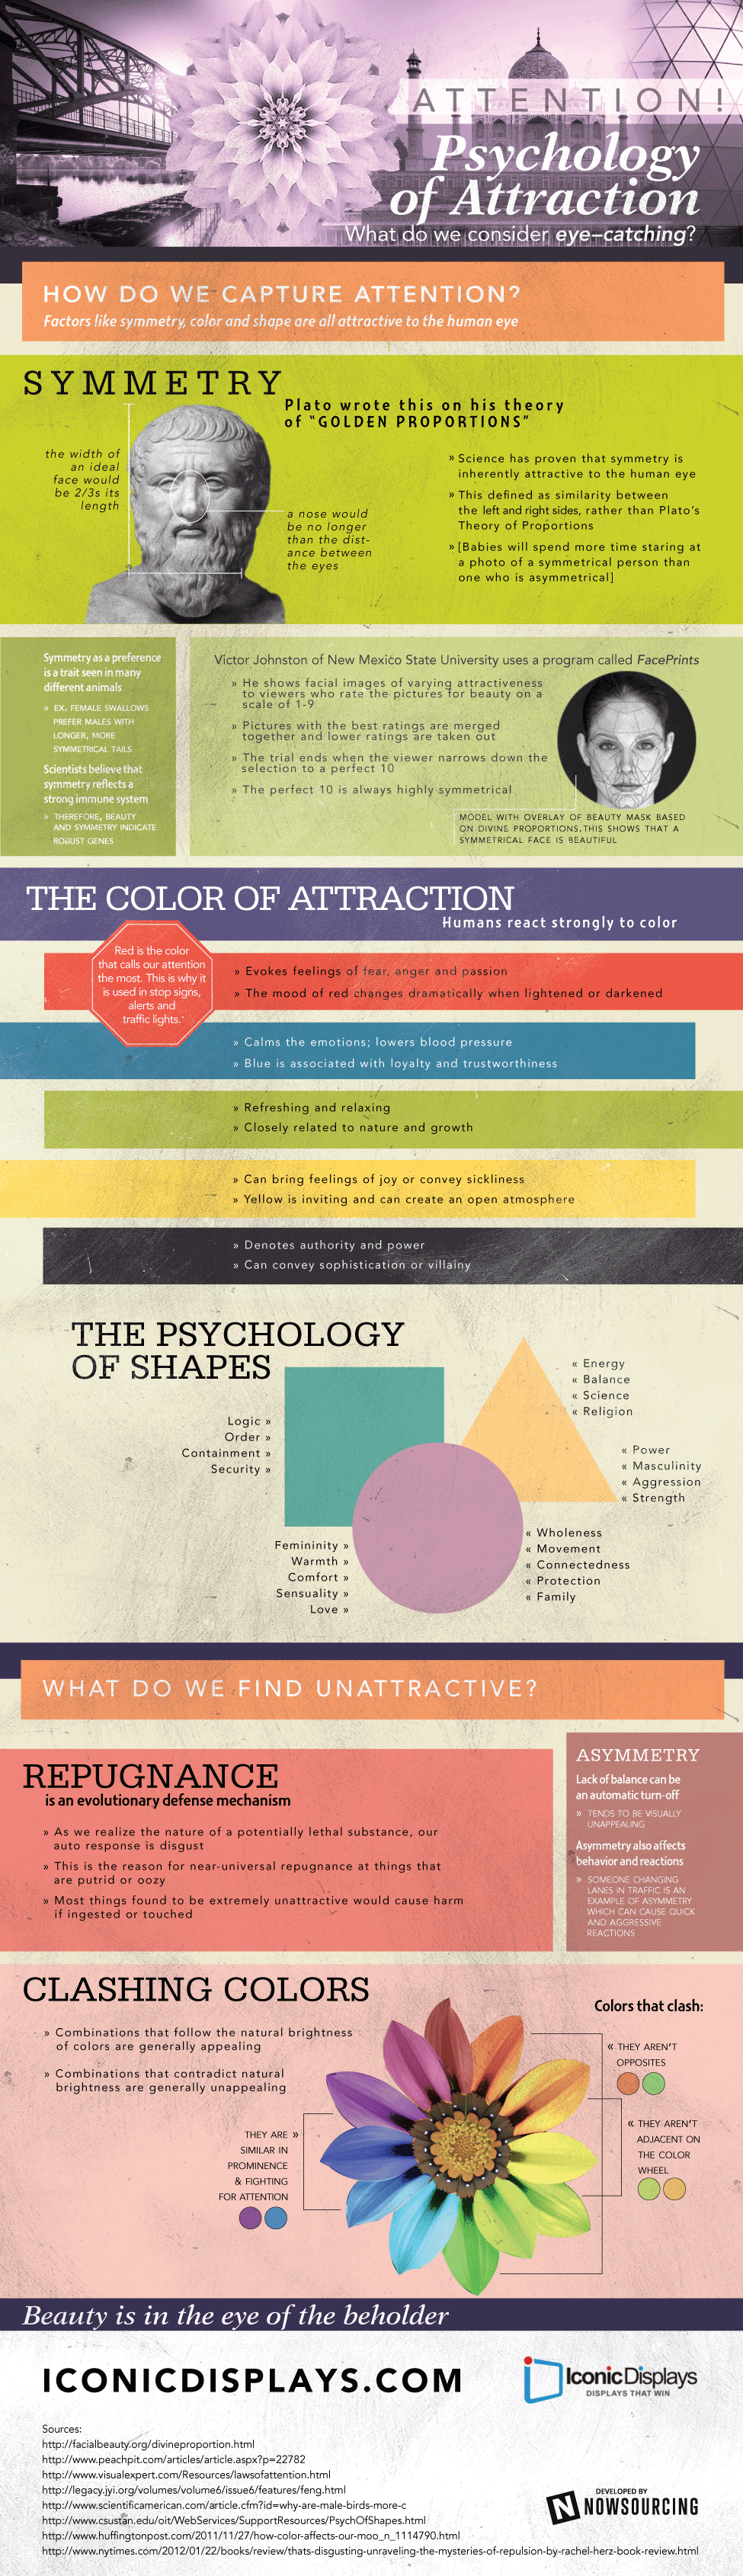 psychology-of-attraction-infographic